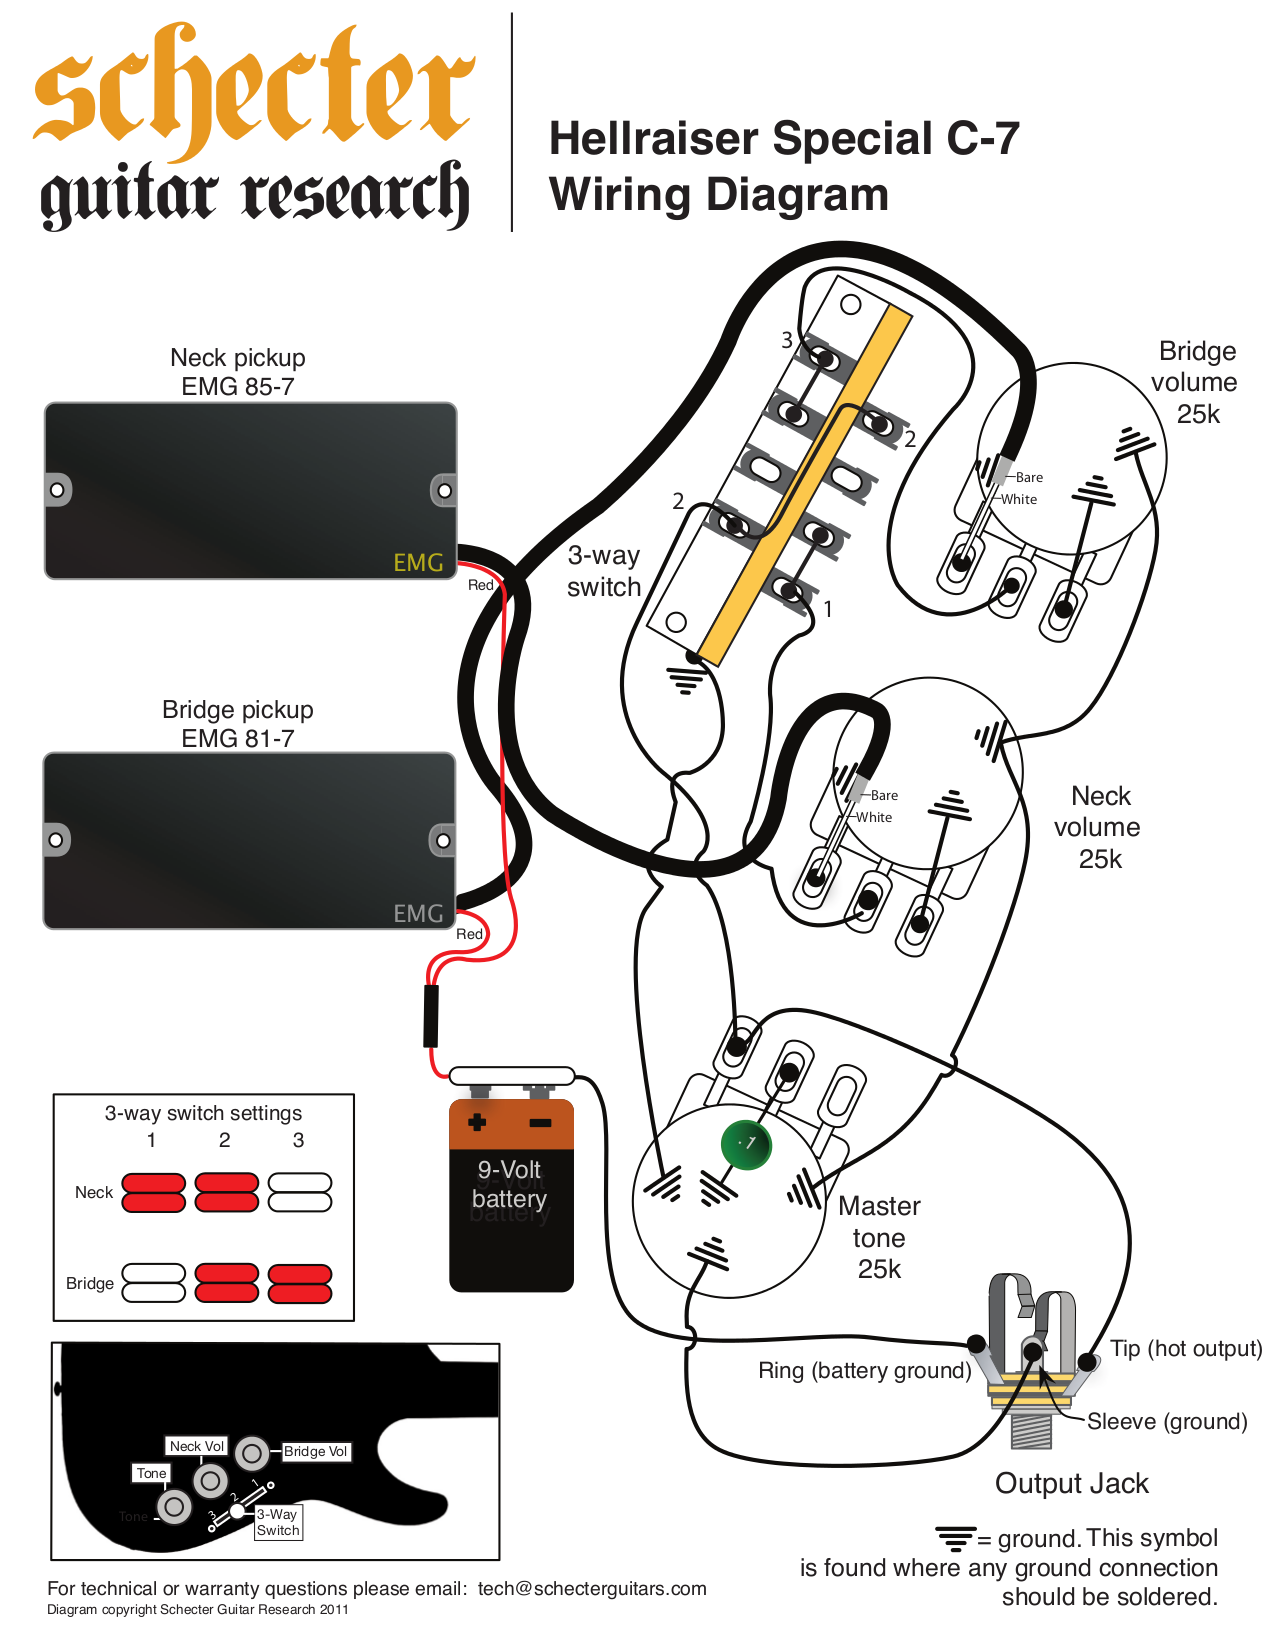 Schecter wiring diagram schecter diamond series c 1 wiring hellraiser16964pdf 0 pdf manual for schecter guitar hellraiser special c 7 schecter wiring diagram sciox Gallery